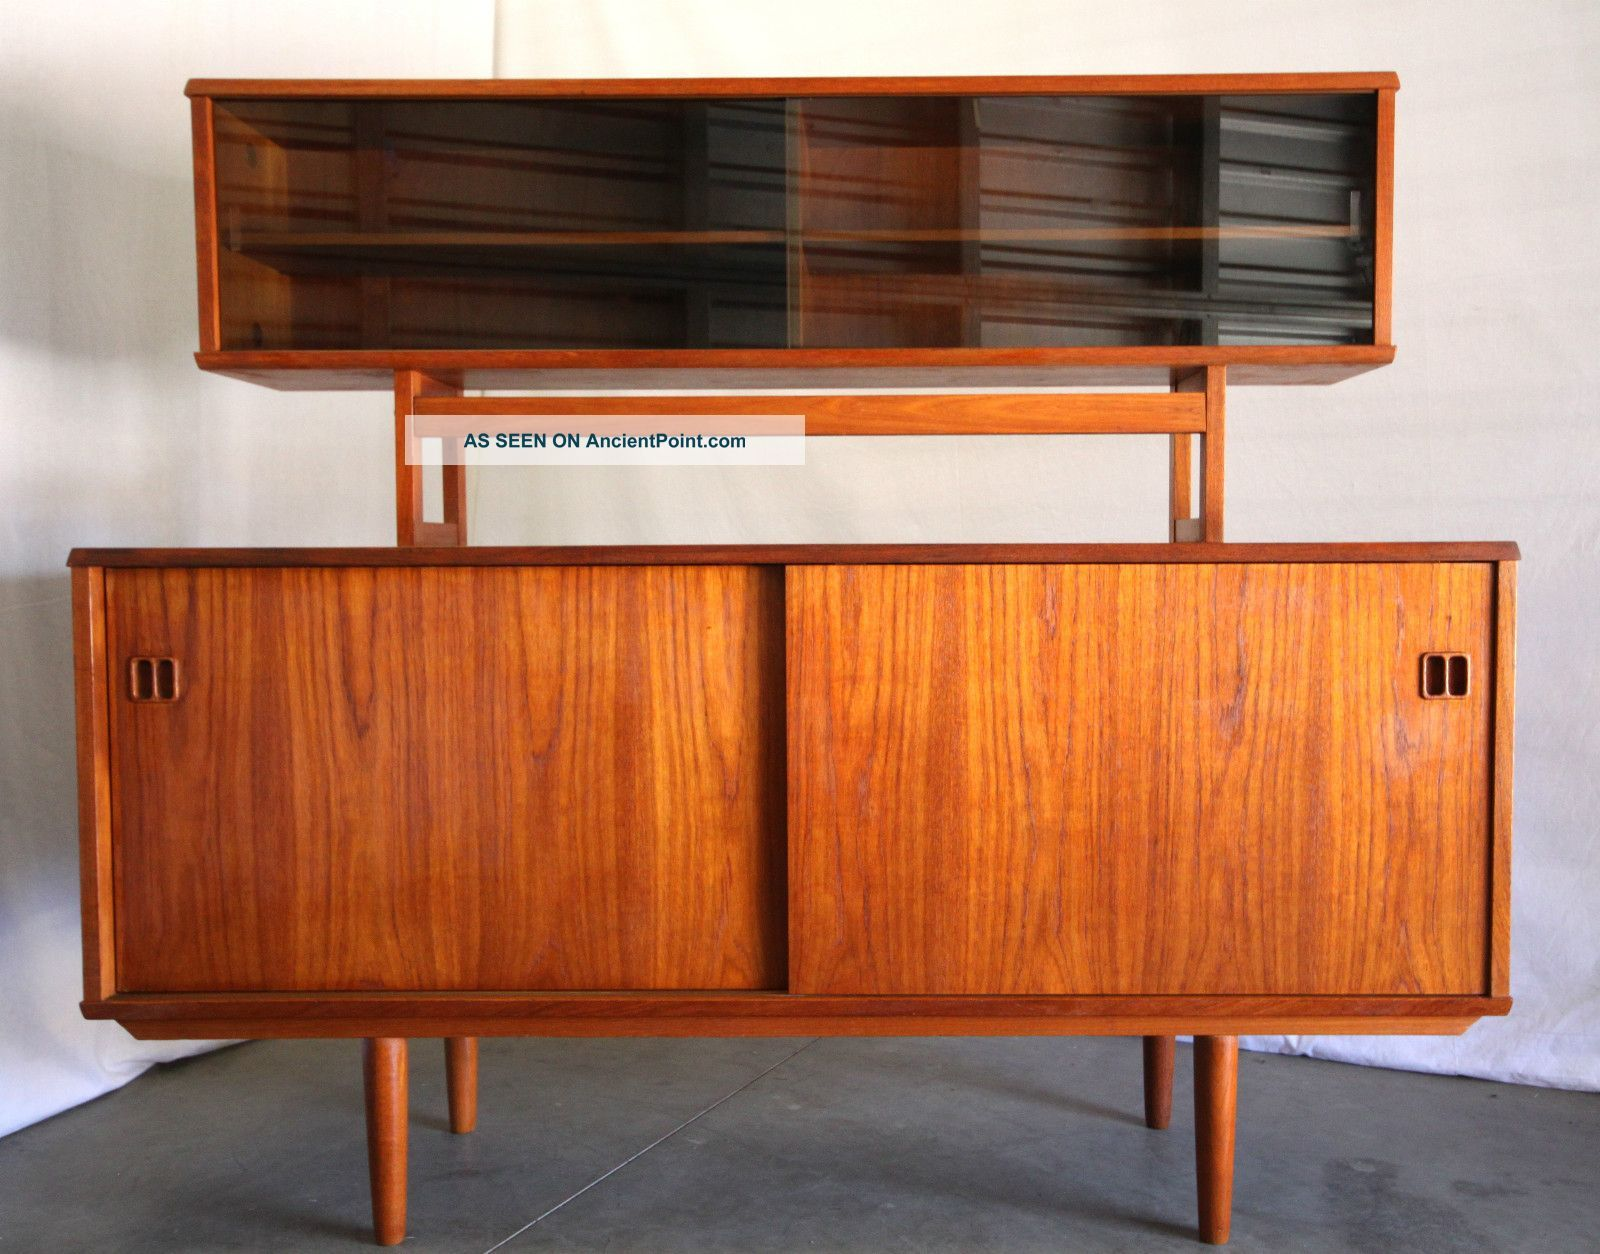 Good Danish Modern Mid Century Teak Credenza Cabinet Wall Unit Sideboard 1960s  Eames 1900 1950 Photo